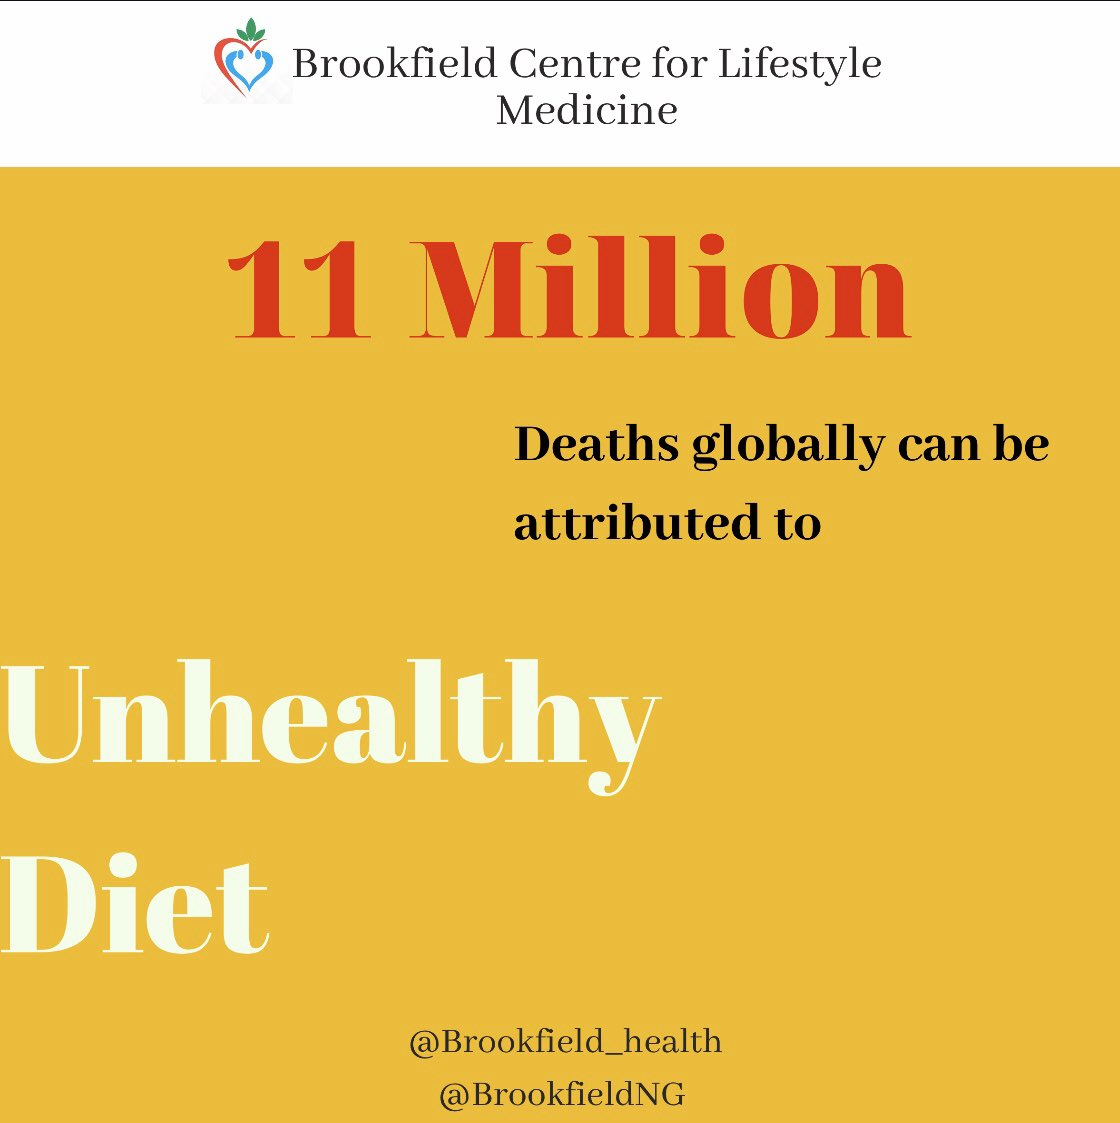 You food choices matter a whole lot. Do you feed or fight diseases with your meals?  . . . #BCLM #LifestyleMedicine  #preventativemedicine #Doctors #WholeMeal #PlantBased #HealthyLiving #PhysicalActivity #Nutrition #Undoit #Health #HowNotToDiet #BrookfieldHealth #Abuja pic.twitter.com/KrH1JpBU6A